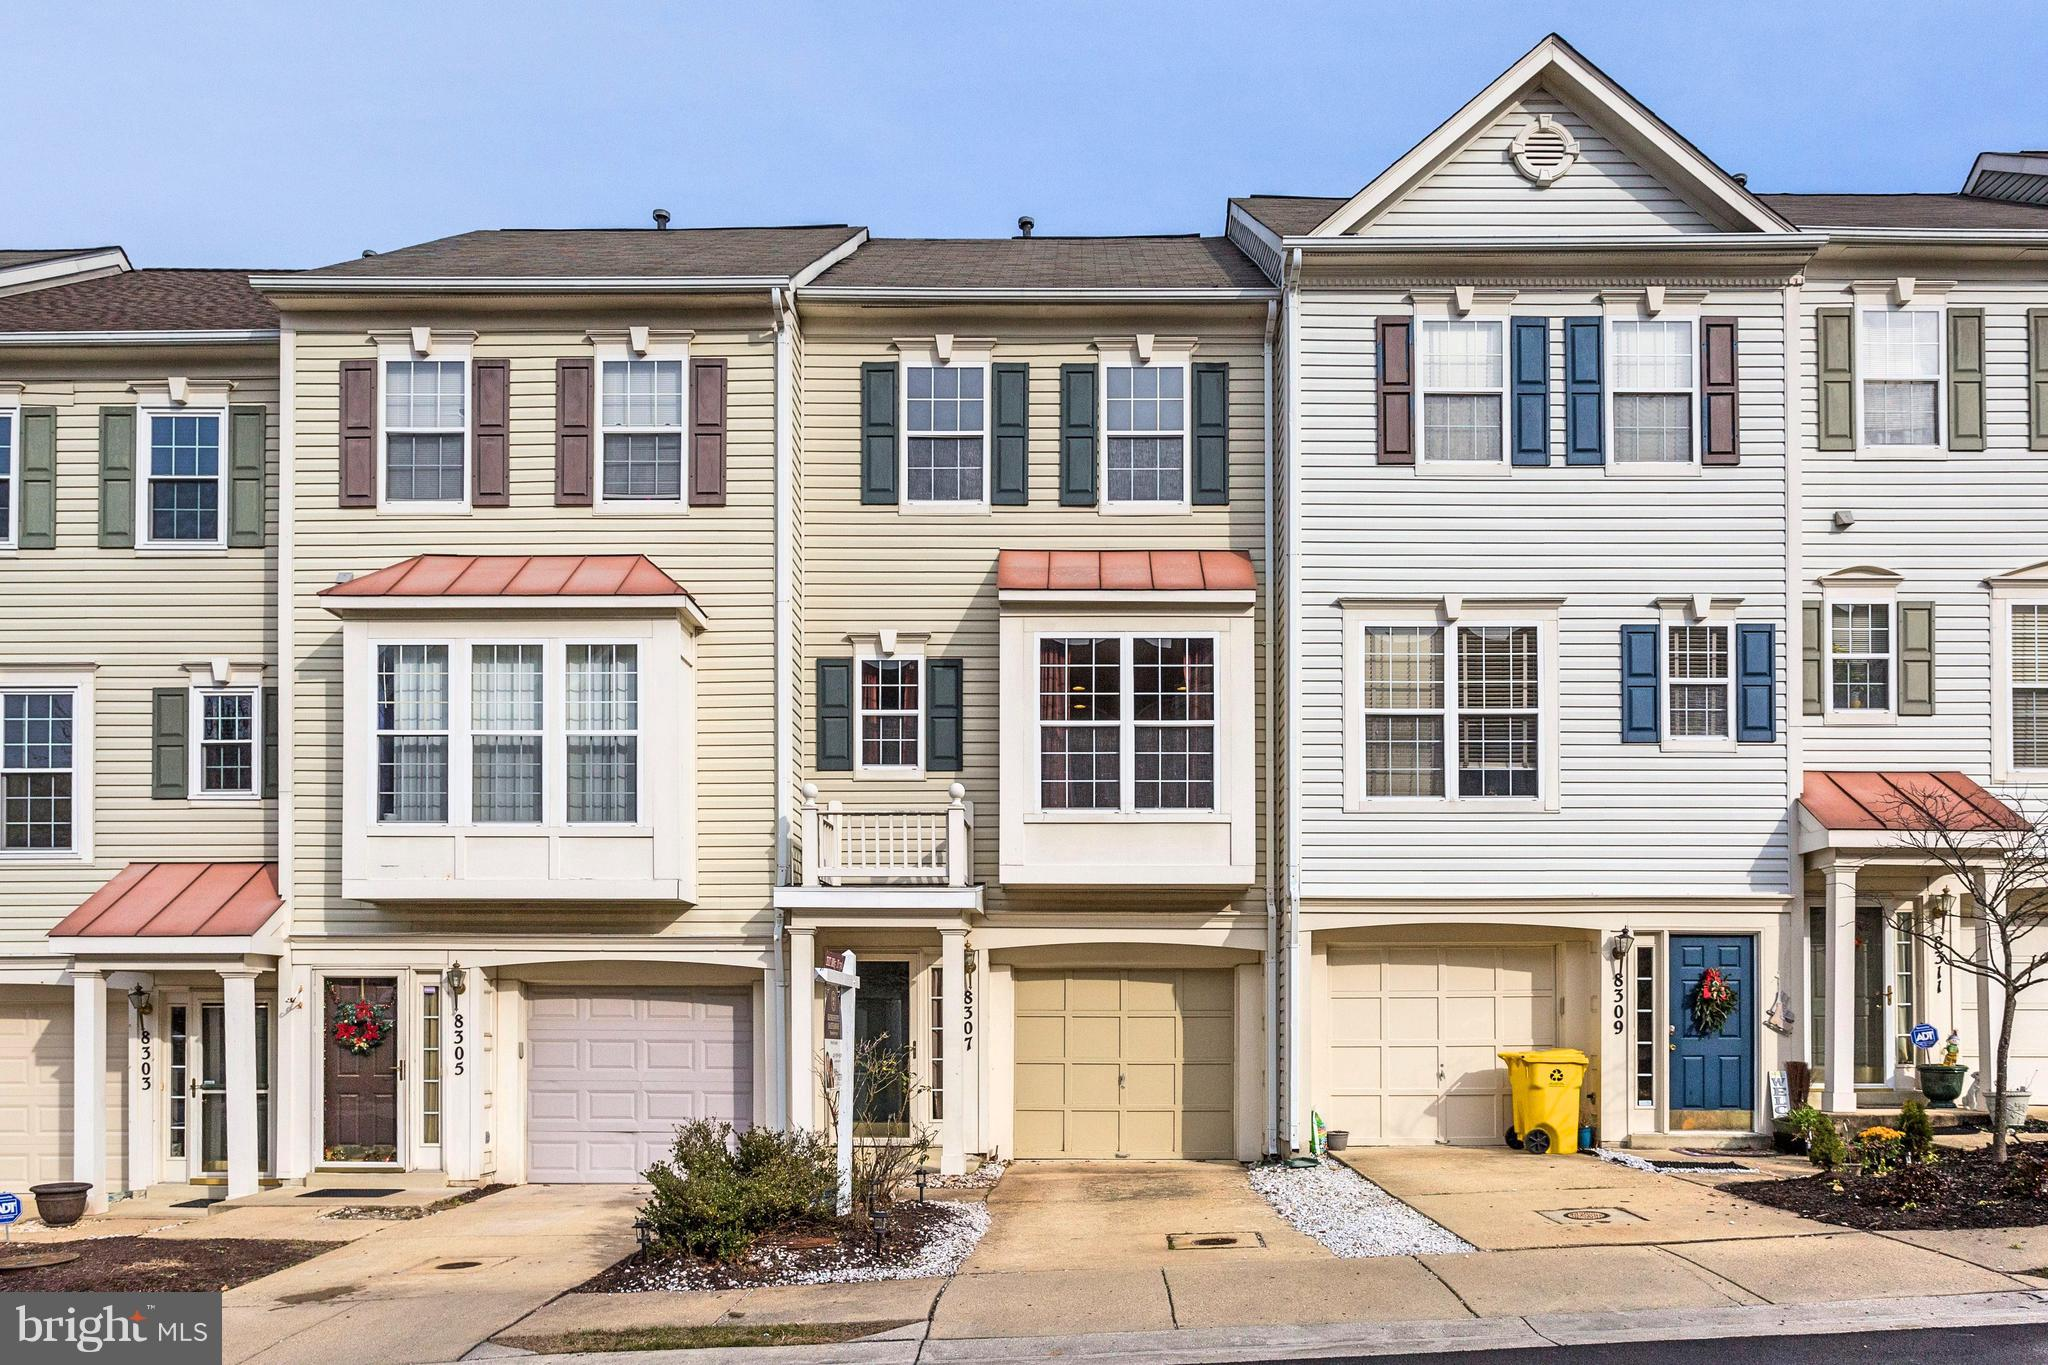 Stunning 2 bedroom townhouse . Hardwood floors through out the first floor, new carpet and paint upstairs as well in the family room.  Granite counter tops and upgraded/stainless steel refrigerator and stove.  Large glass sliding doors off the kitchen leading to the deck - perfect for entertaining.